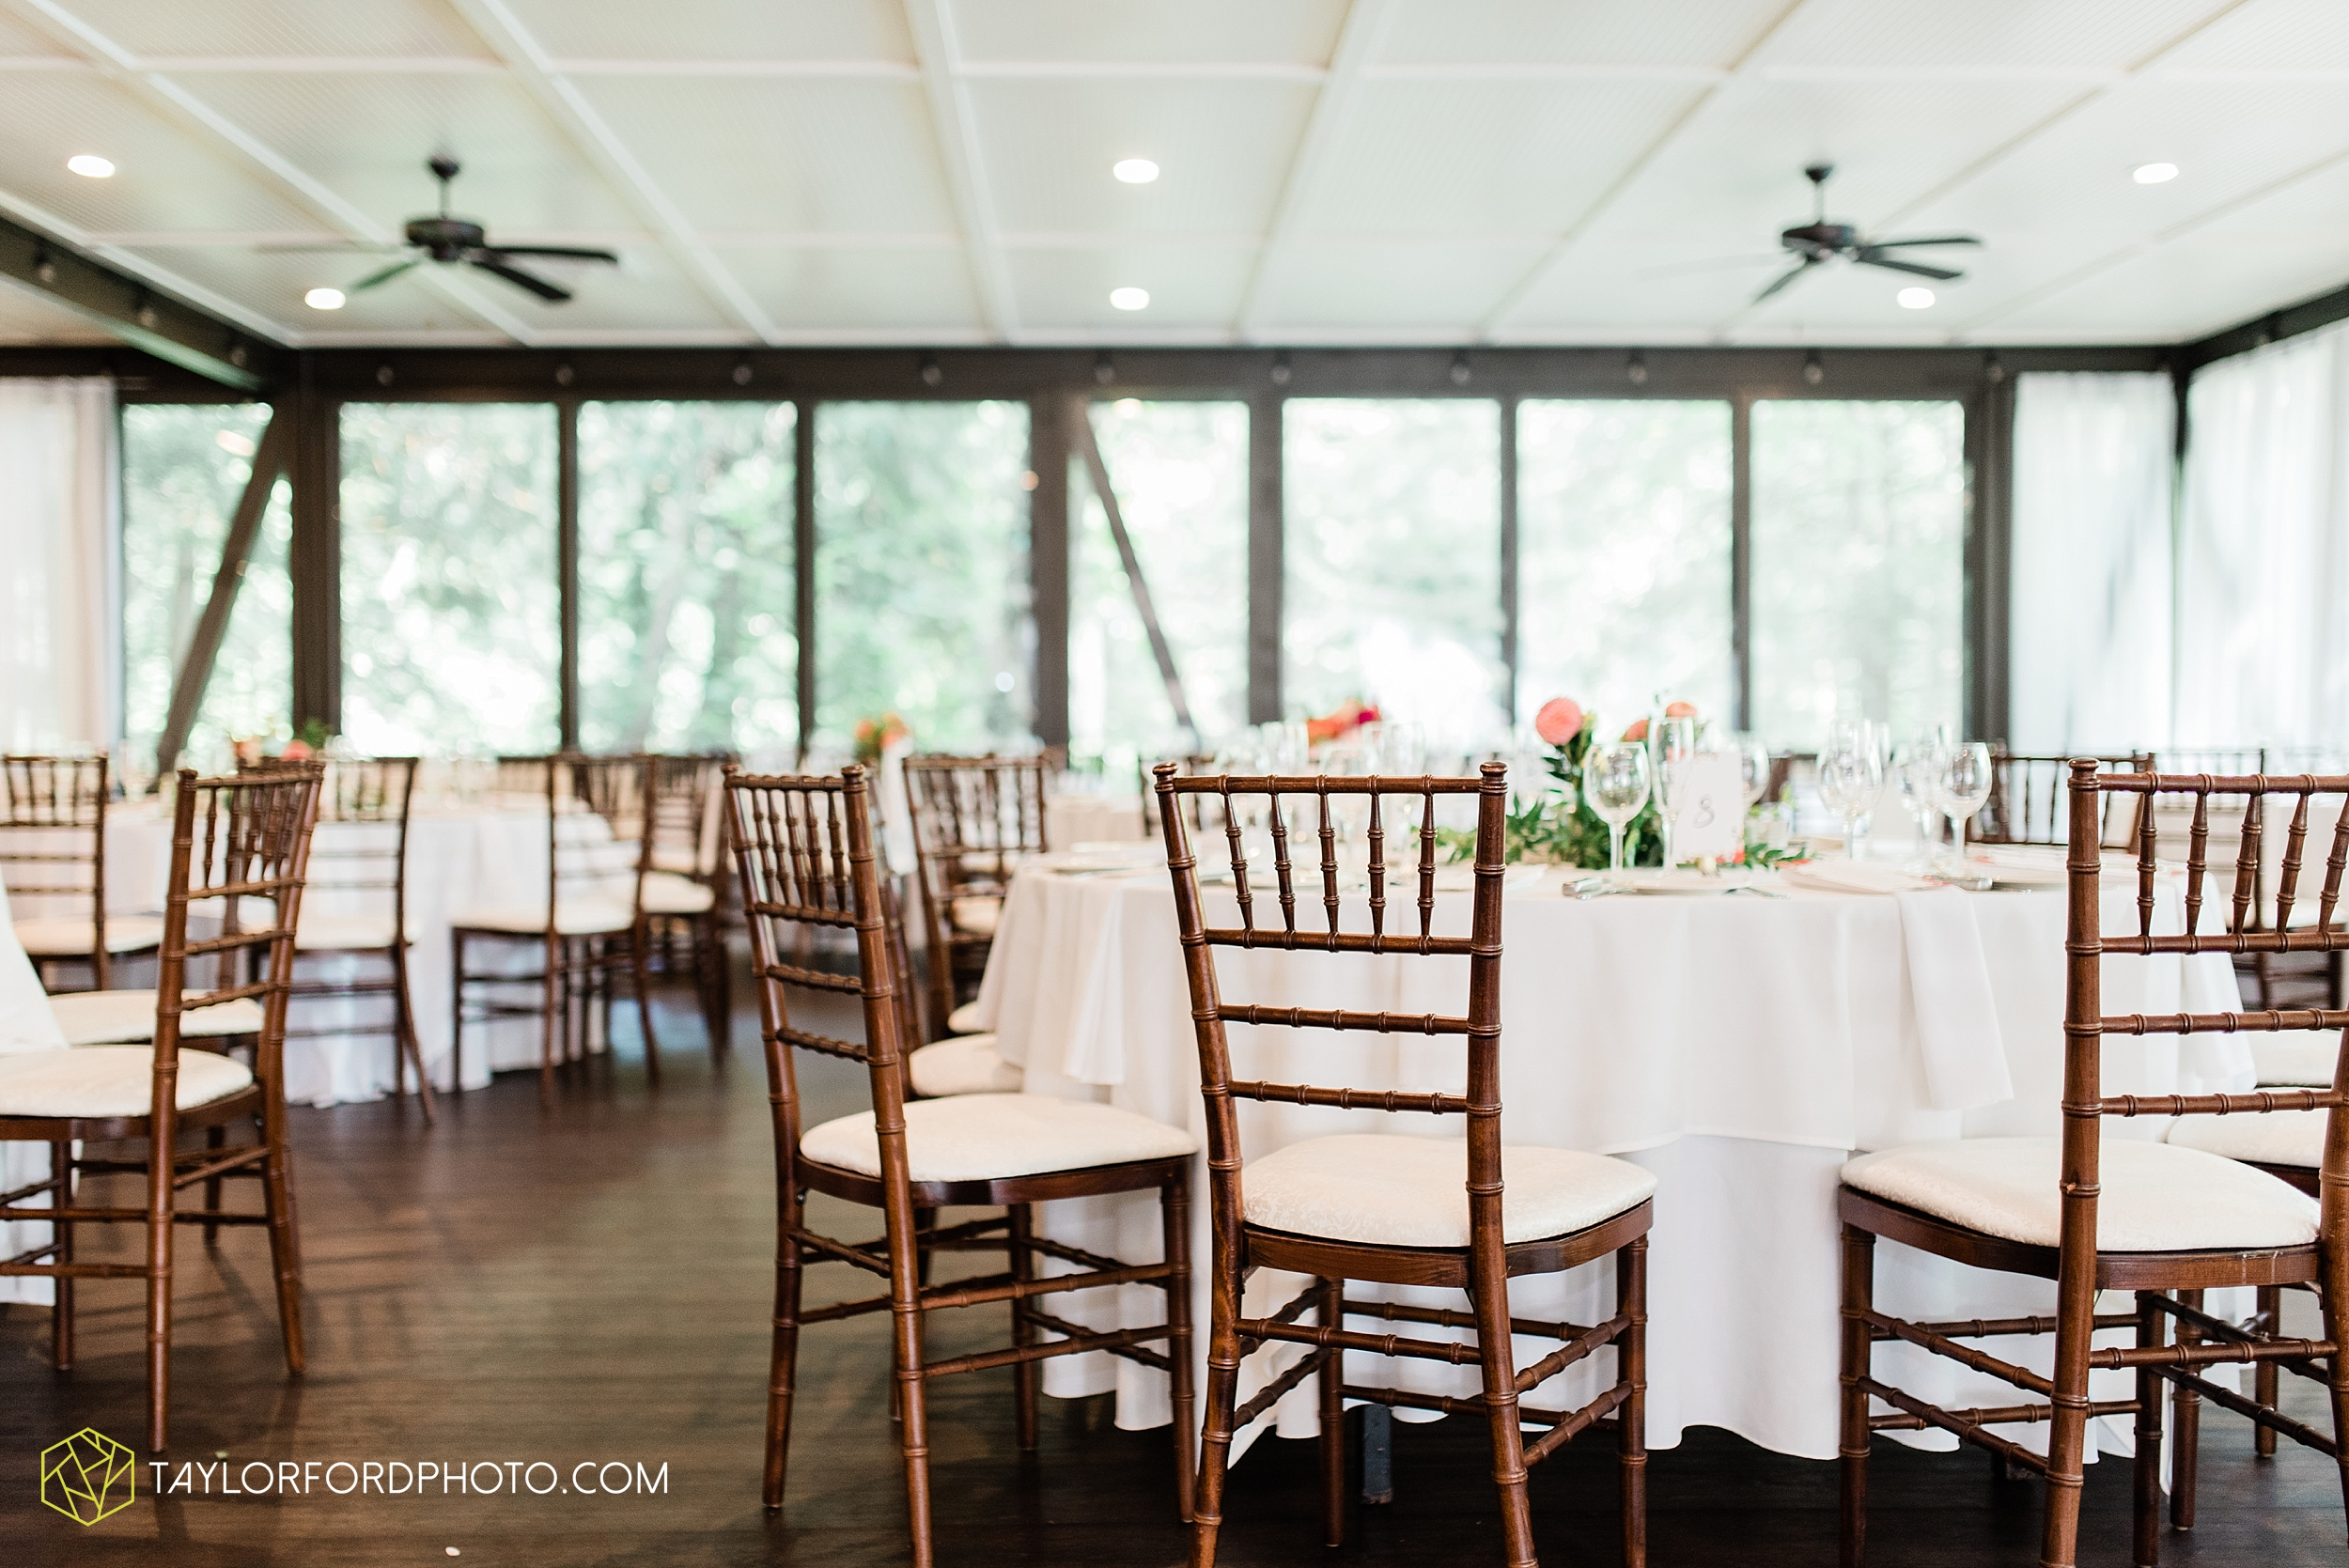 margot-may-evan-kohler-club-at-hillbrook-cleveland-chagrin-falls-outdoor-wedding-bhldn-gardenview-flowers-toledo-photographer-taylor-ford-photographer_9621.jpg